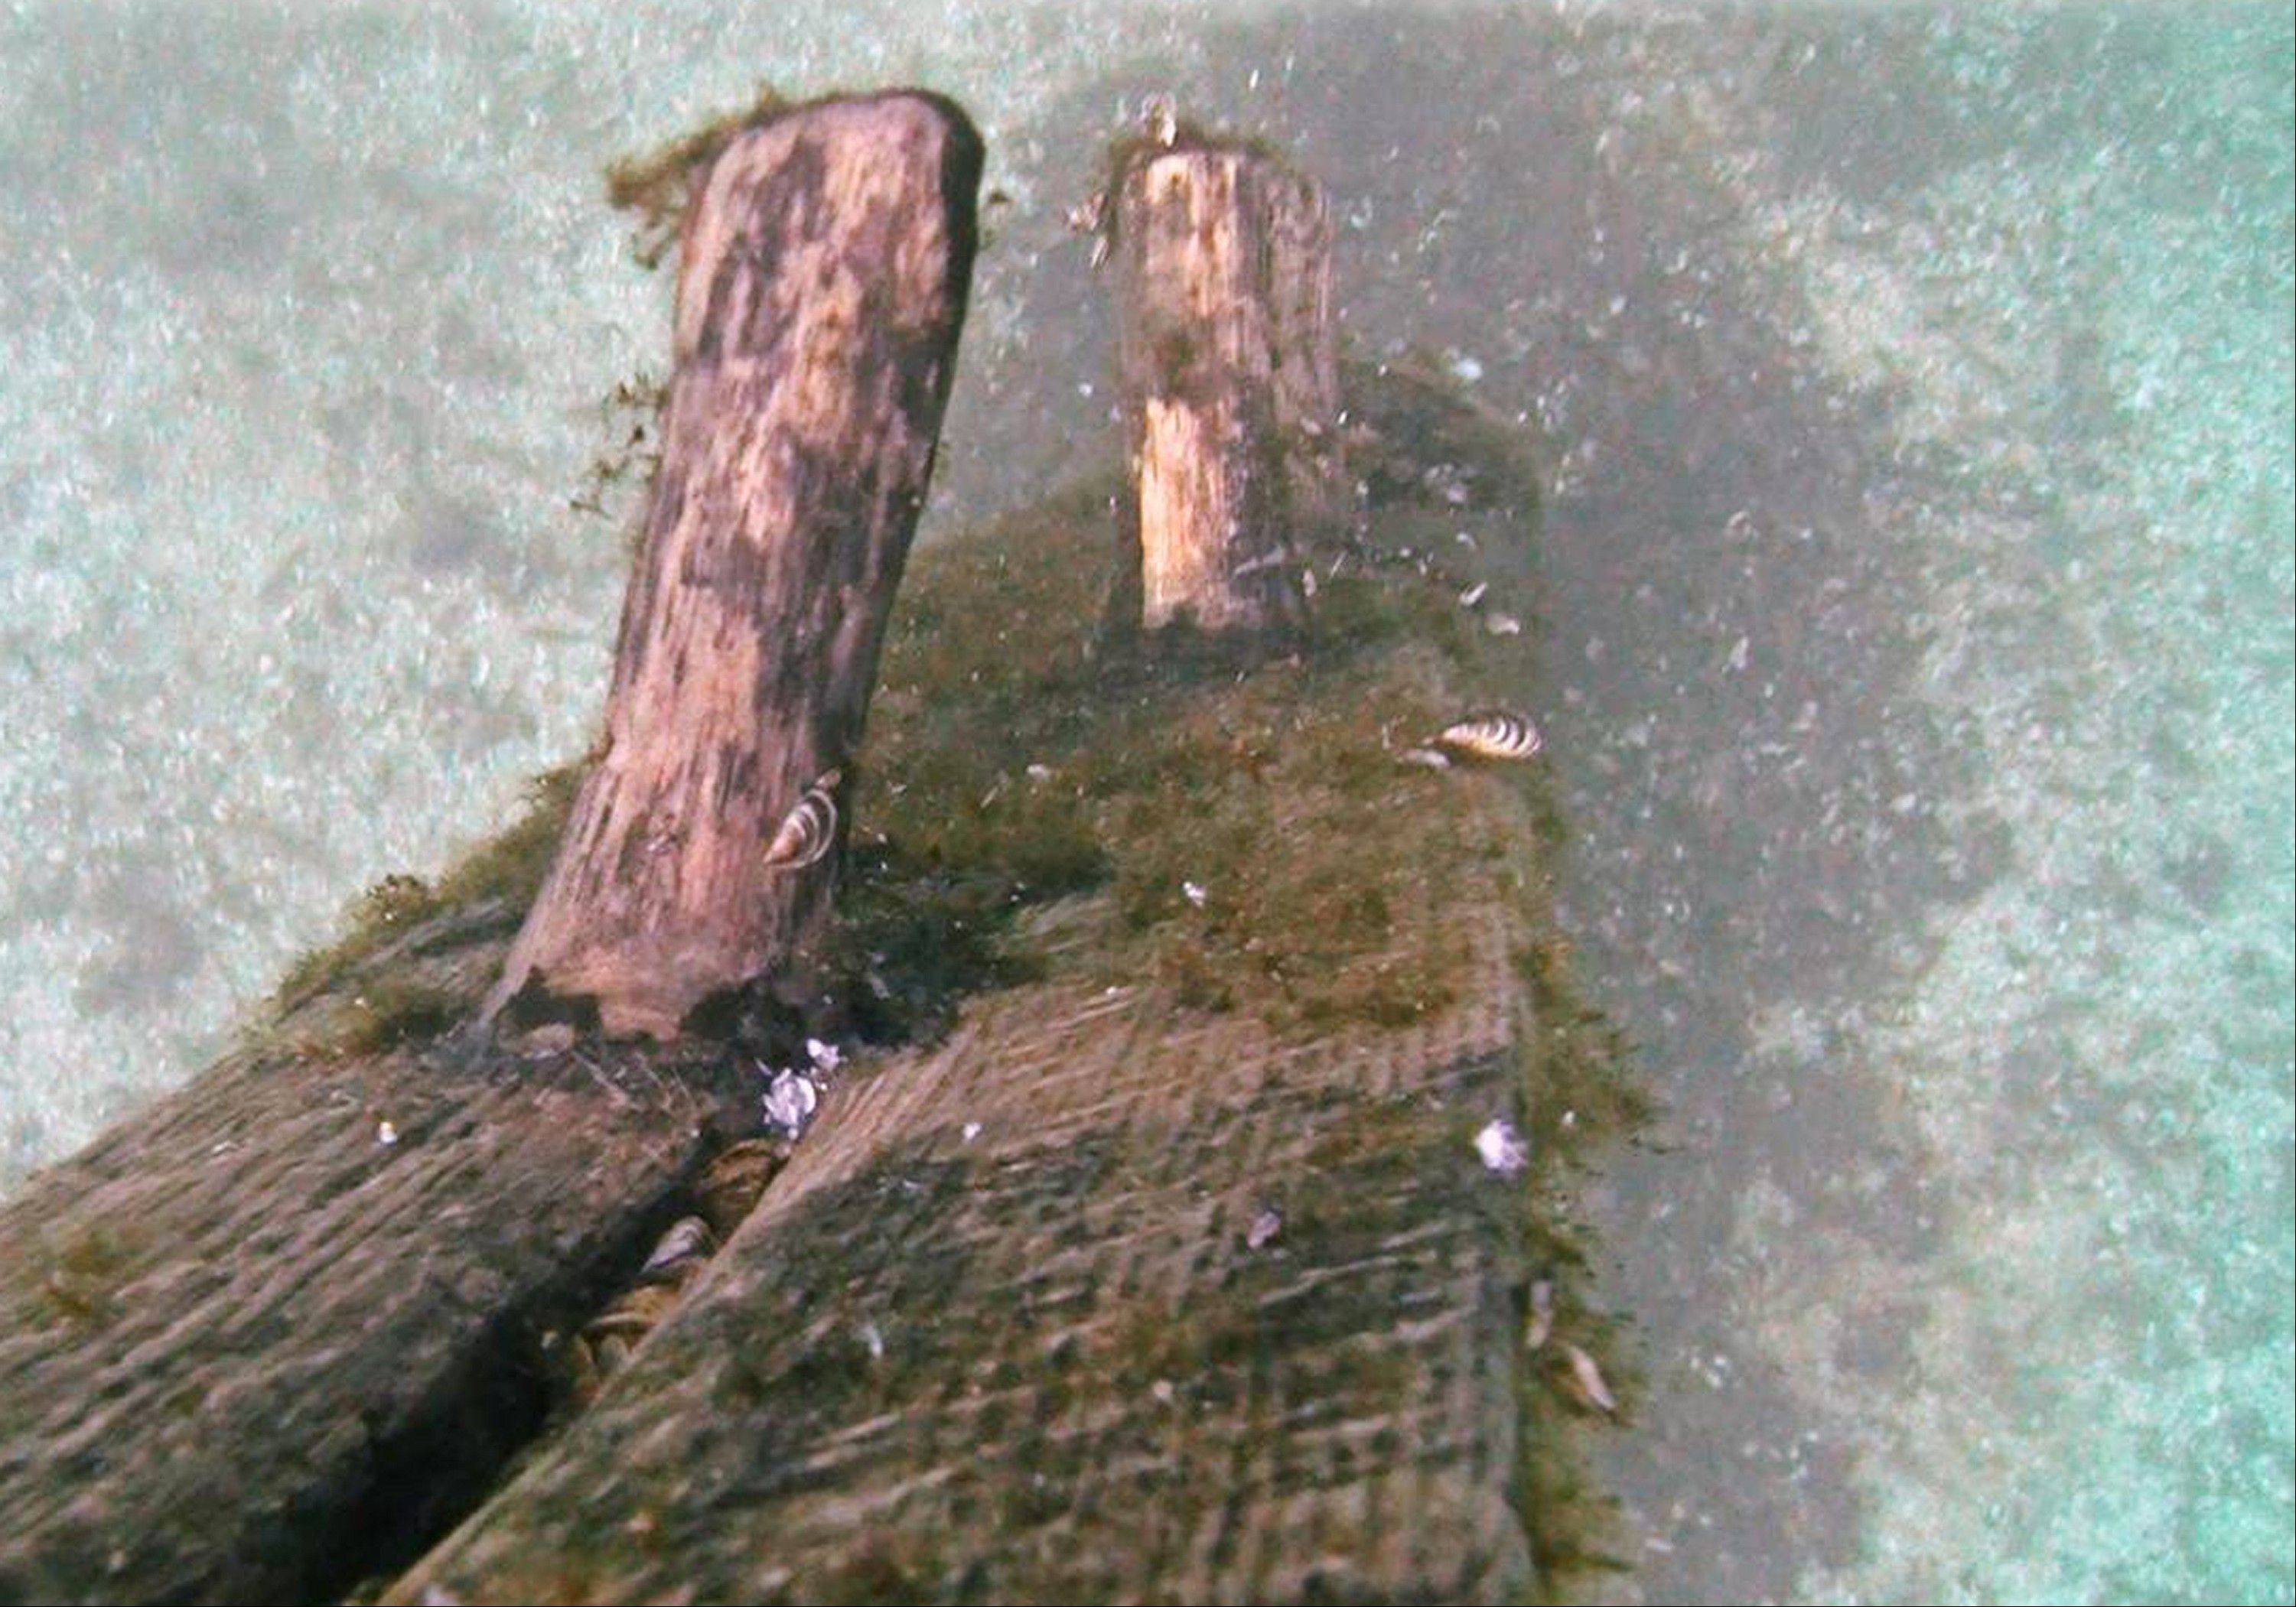 Timbers protrude from the bottom of Lake Michigan that were discovered by Steve Libert, head of Great Lakes Exploration Group, in 2001. On Saturday, Libert�s crew will haul the massive timber to the radiology section of a Gaylord, Mich., hospital for a CT scan hoping to determining the age of the tree that produced it and when it was cut down.